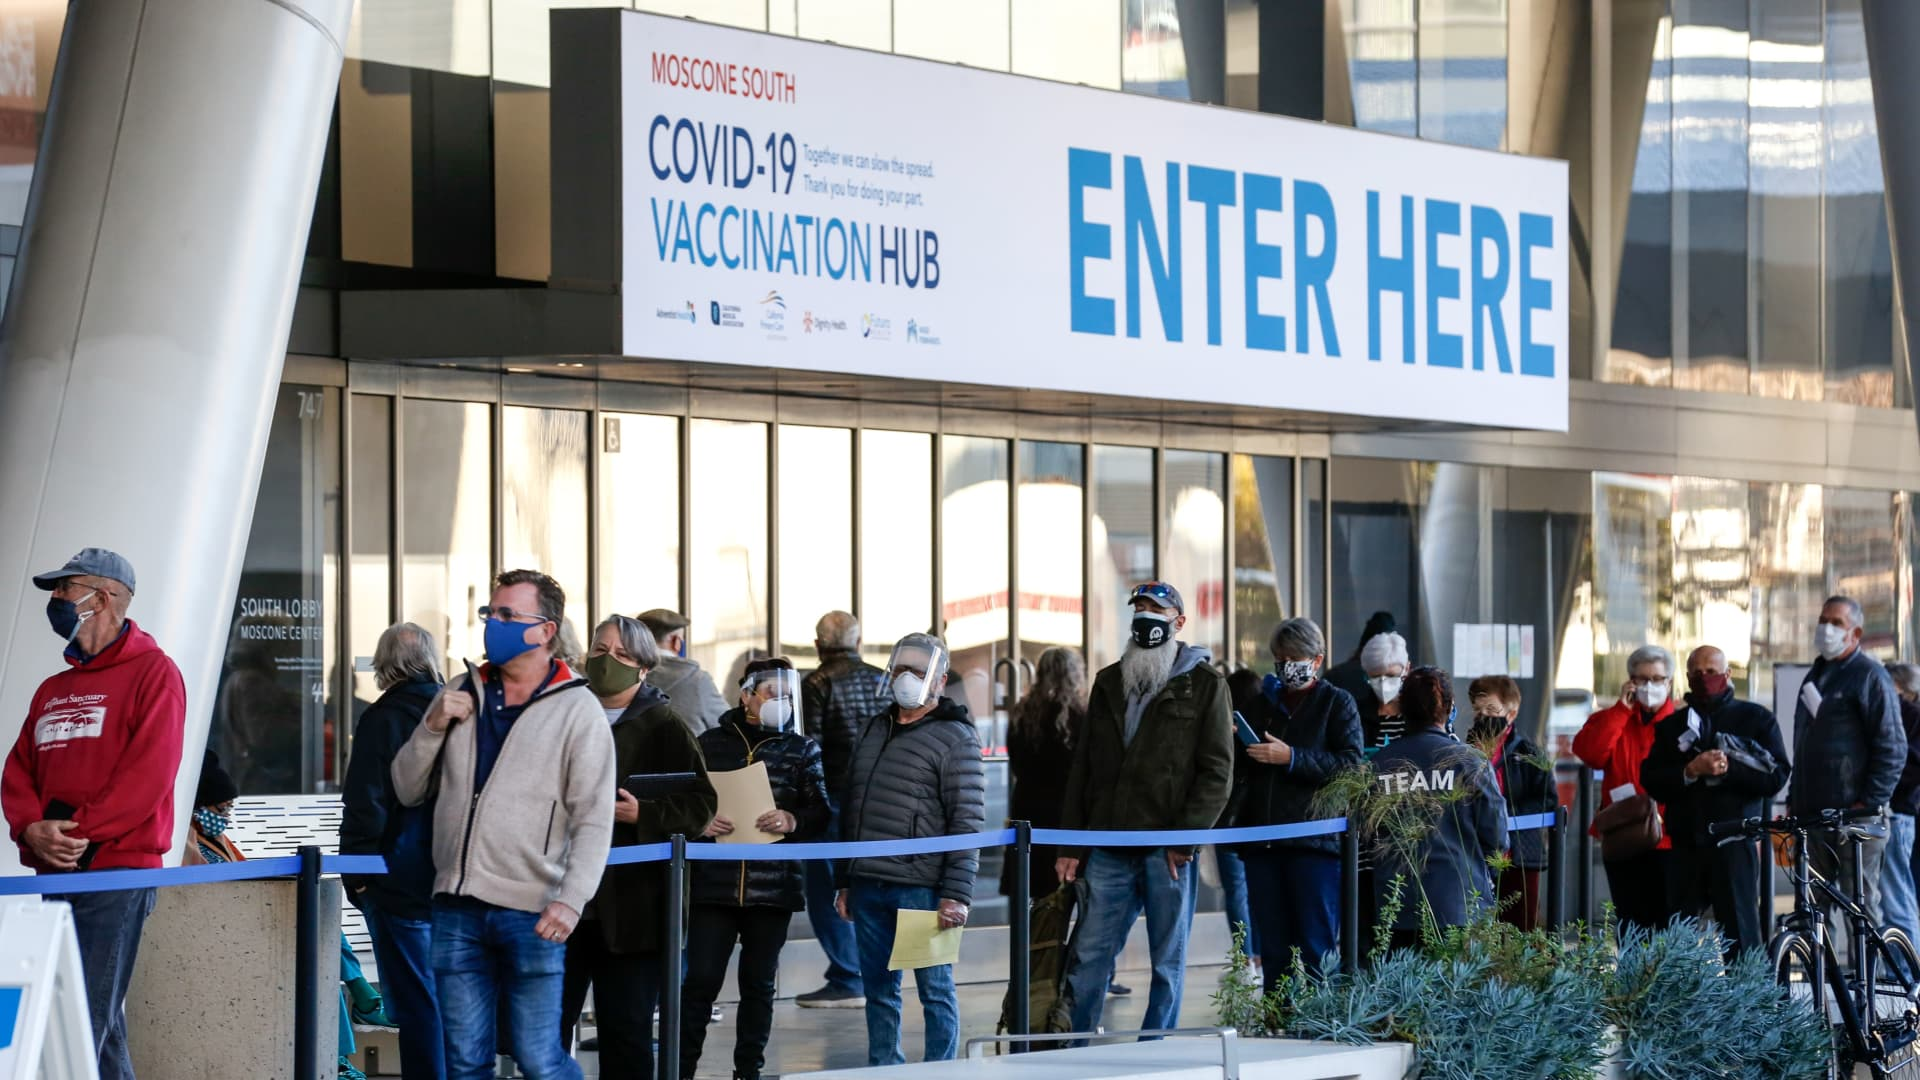 People stand in line at the mass vaccination site at San Francisco's Moscone Convention Center that opened today for healthcare workers and people over 65 on February 5, 2021 in San Francisco, California.